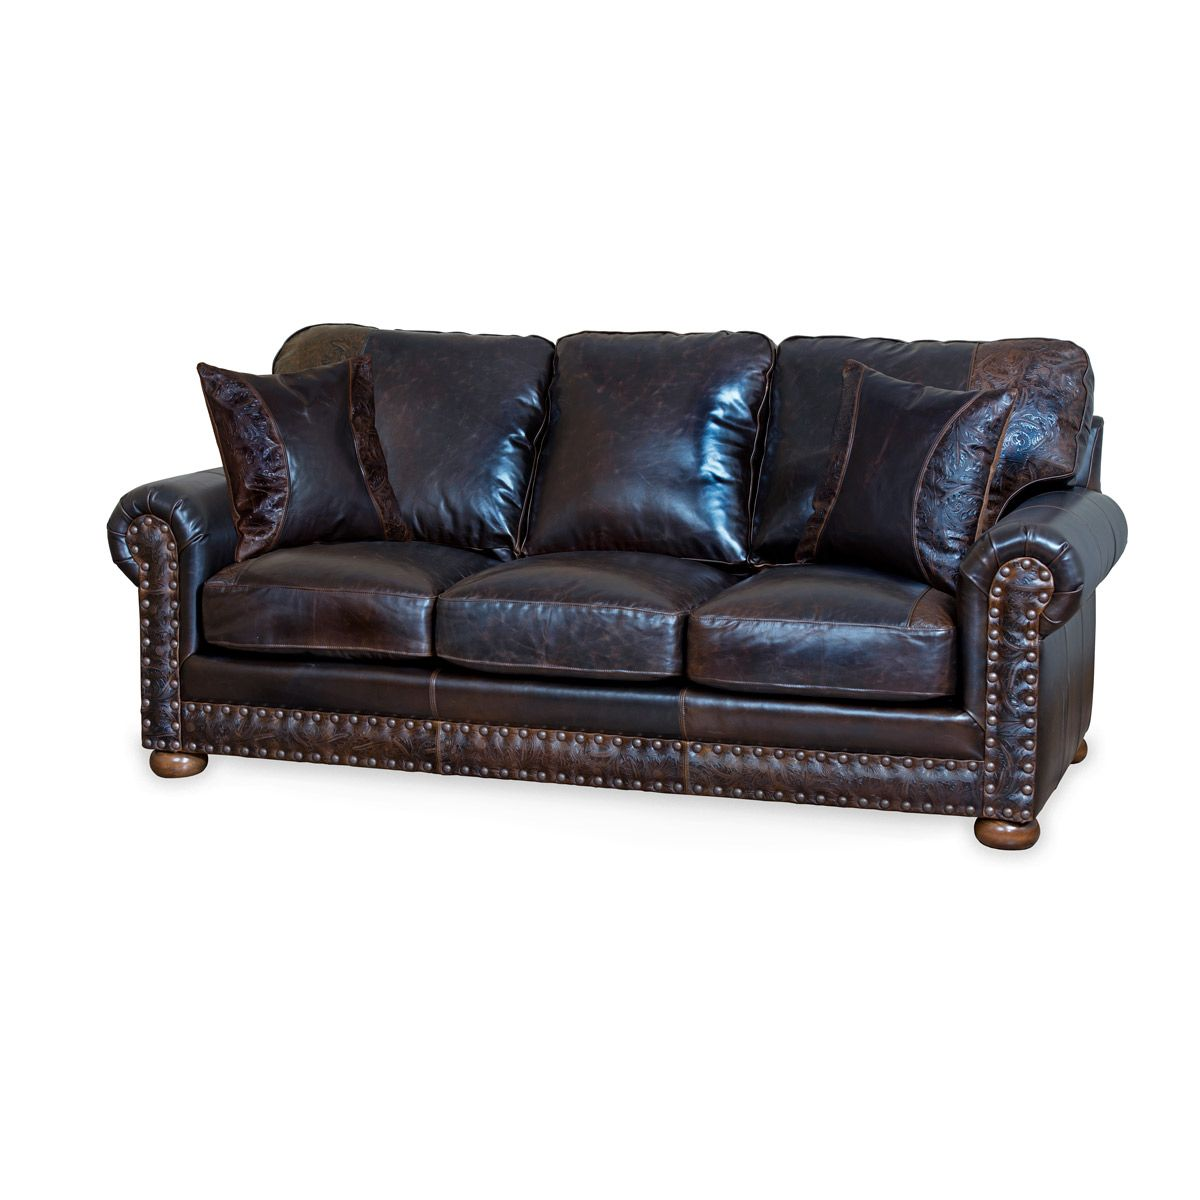 The American Outlaw Sleeper Sofa